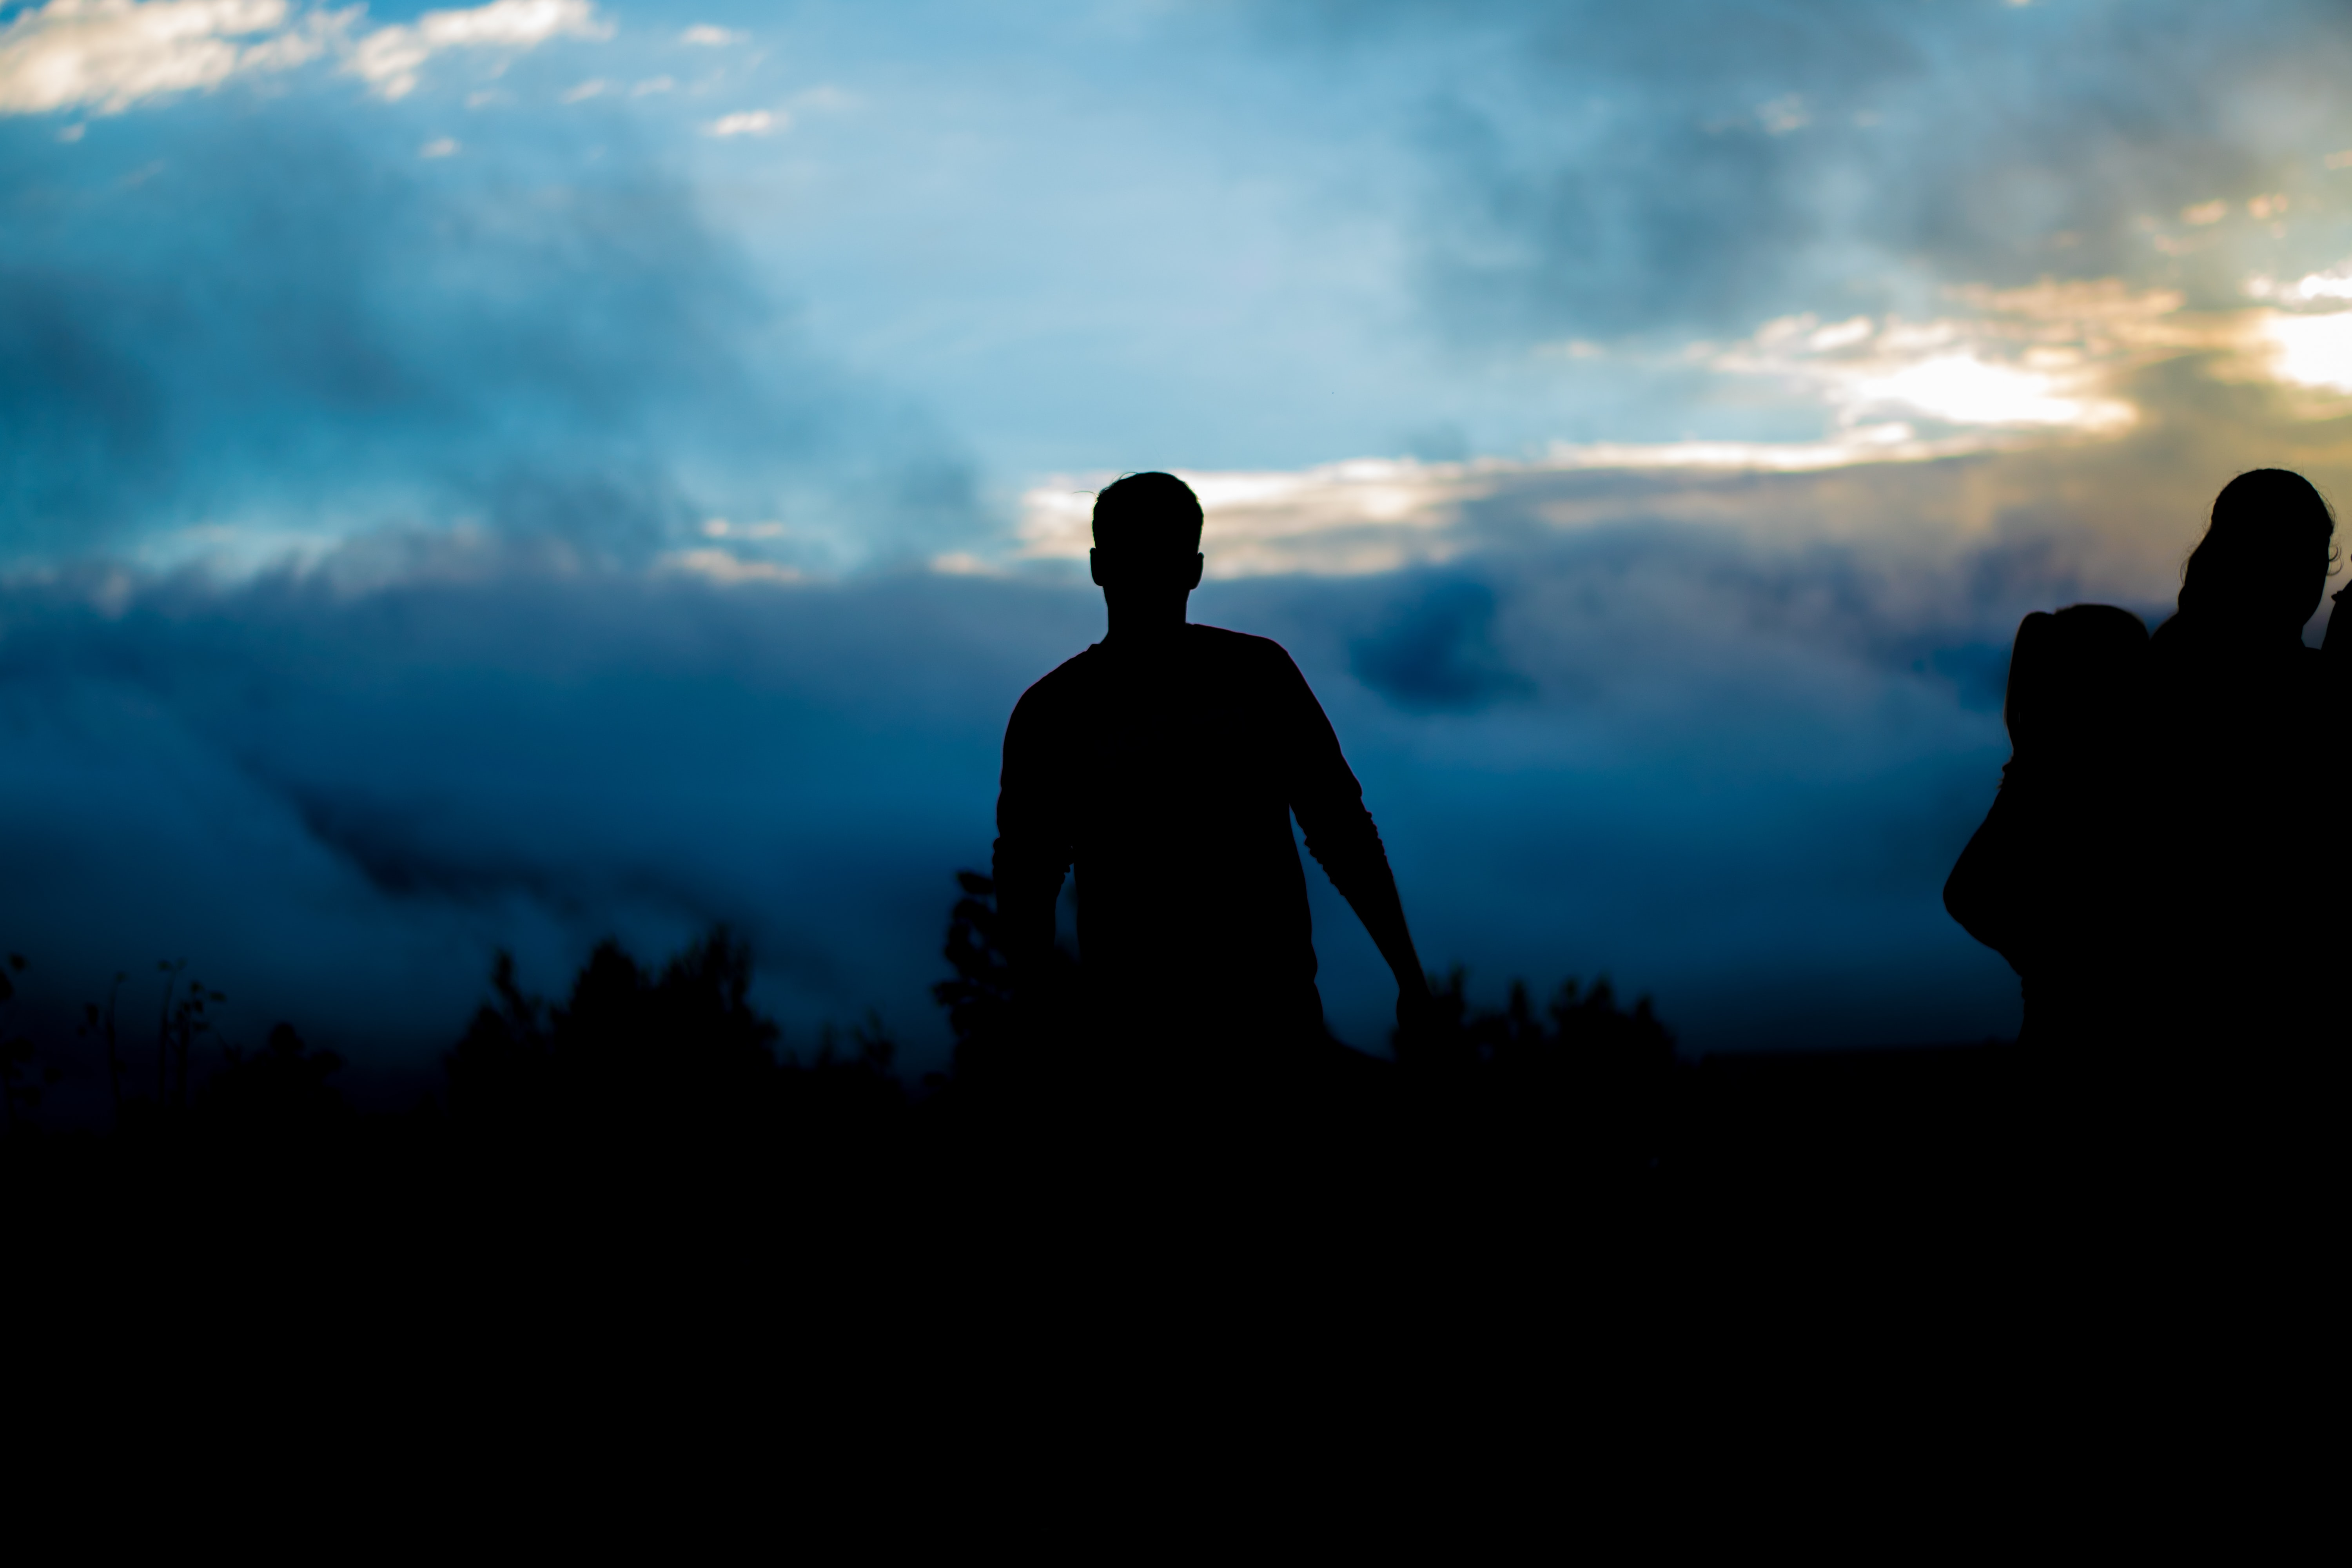 silhouette of person walking towers trees